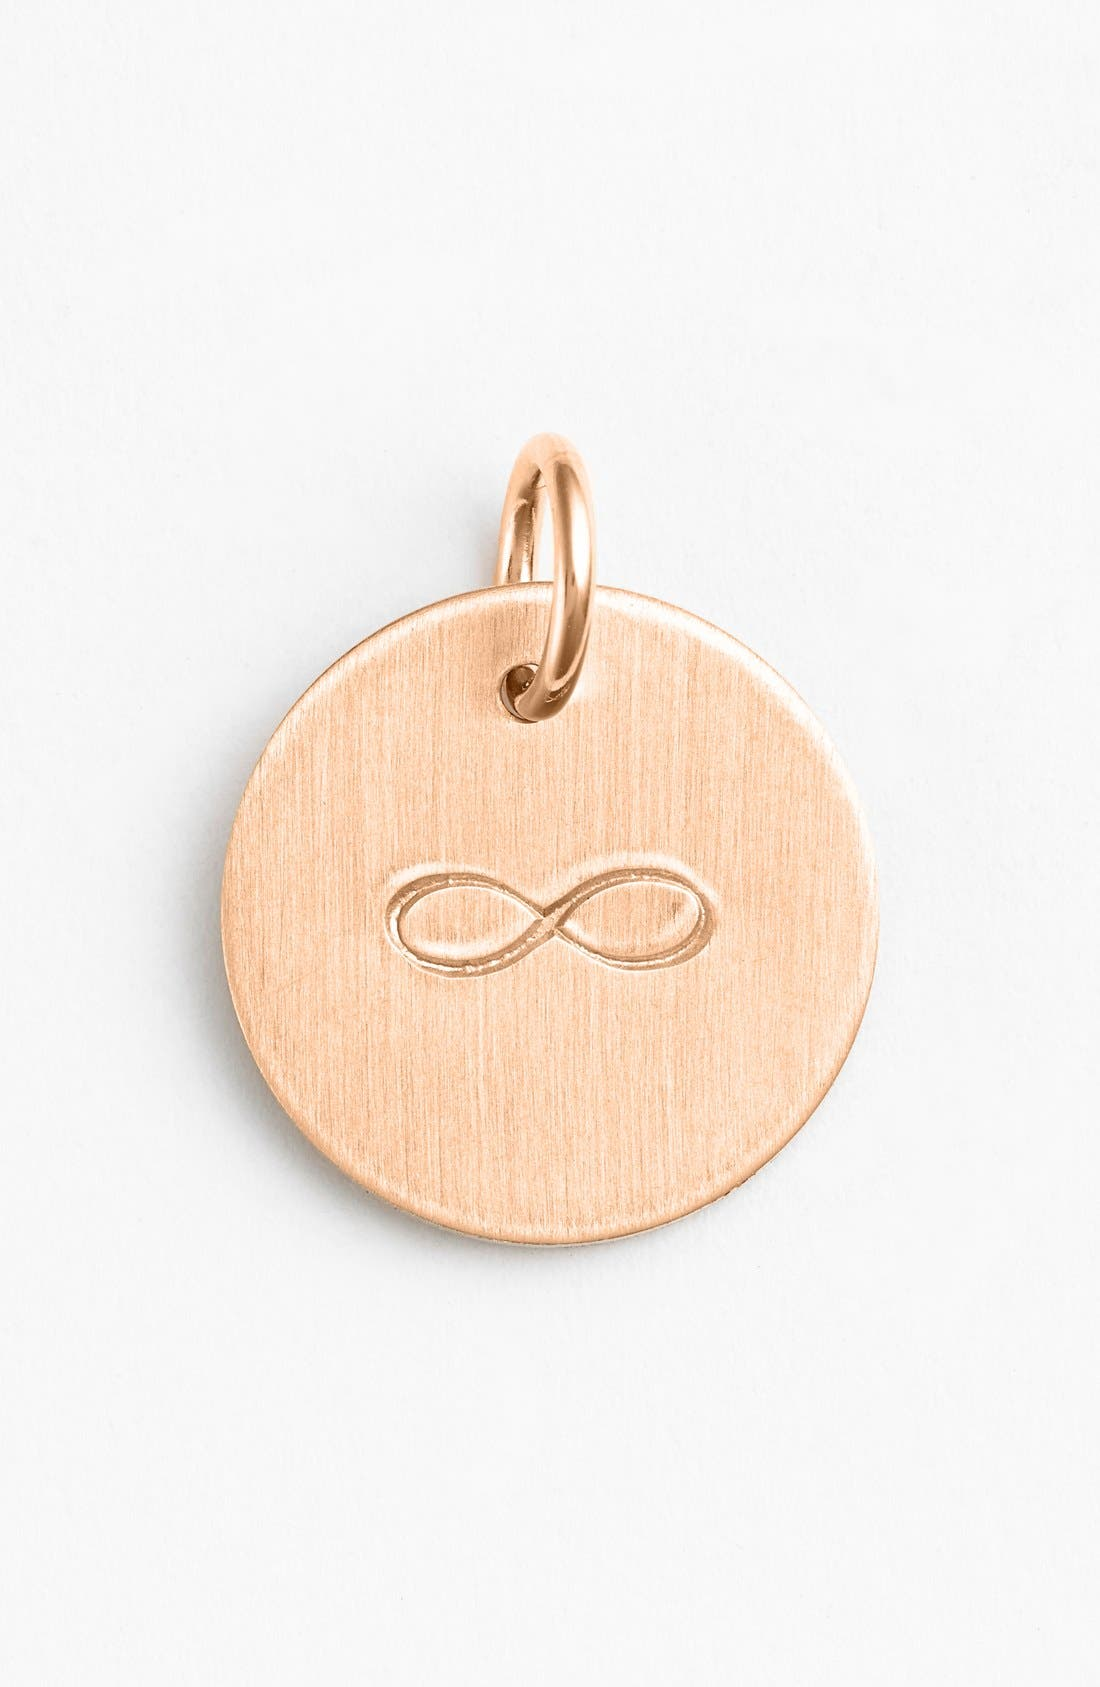 Infinity Stamp Charm,                         Main,                         color, 14K Rose Gold Fill Infinity